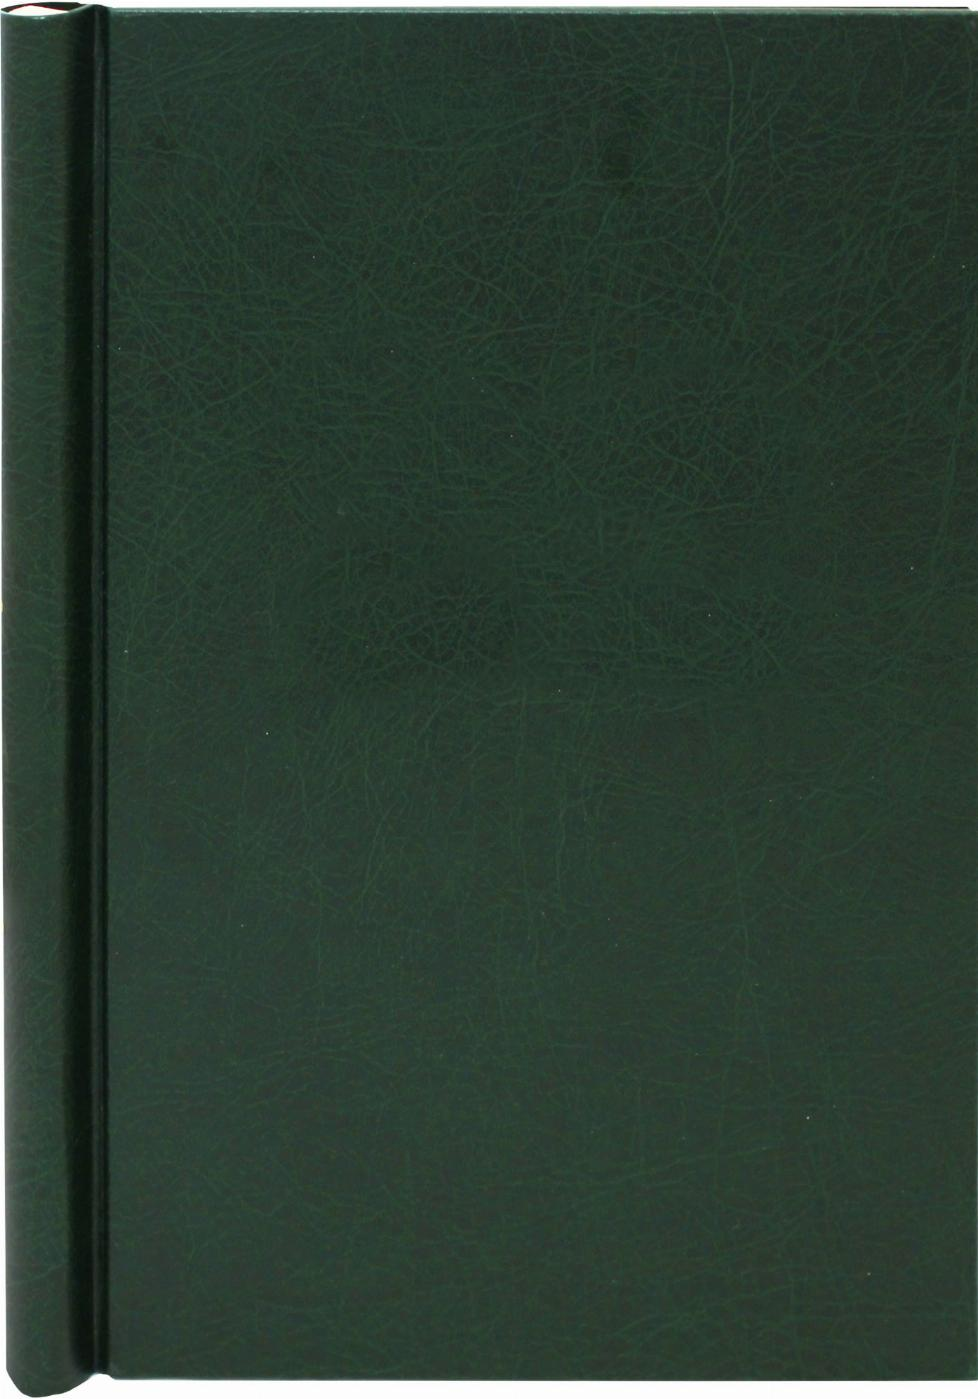 A4 Green Leather Effect Family History Springback Binder - Untitled